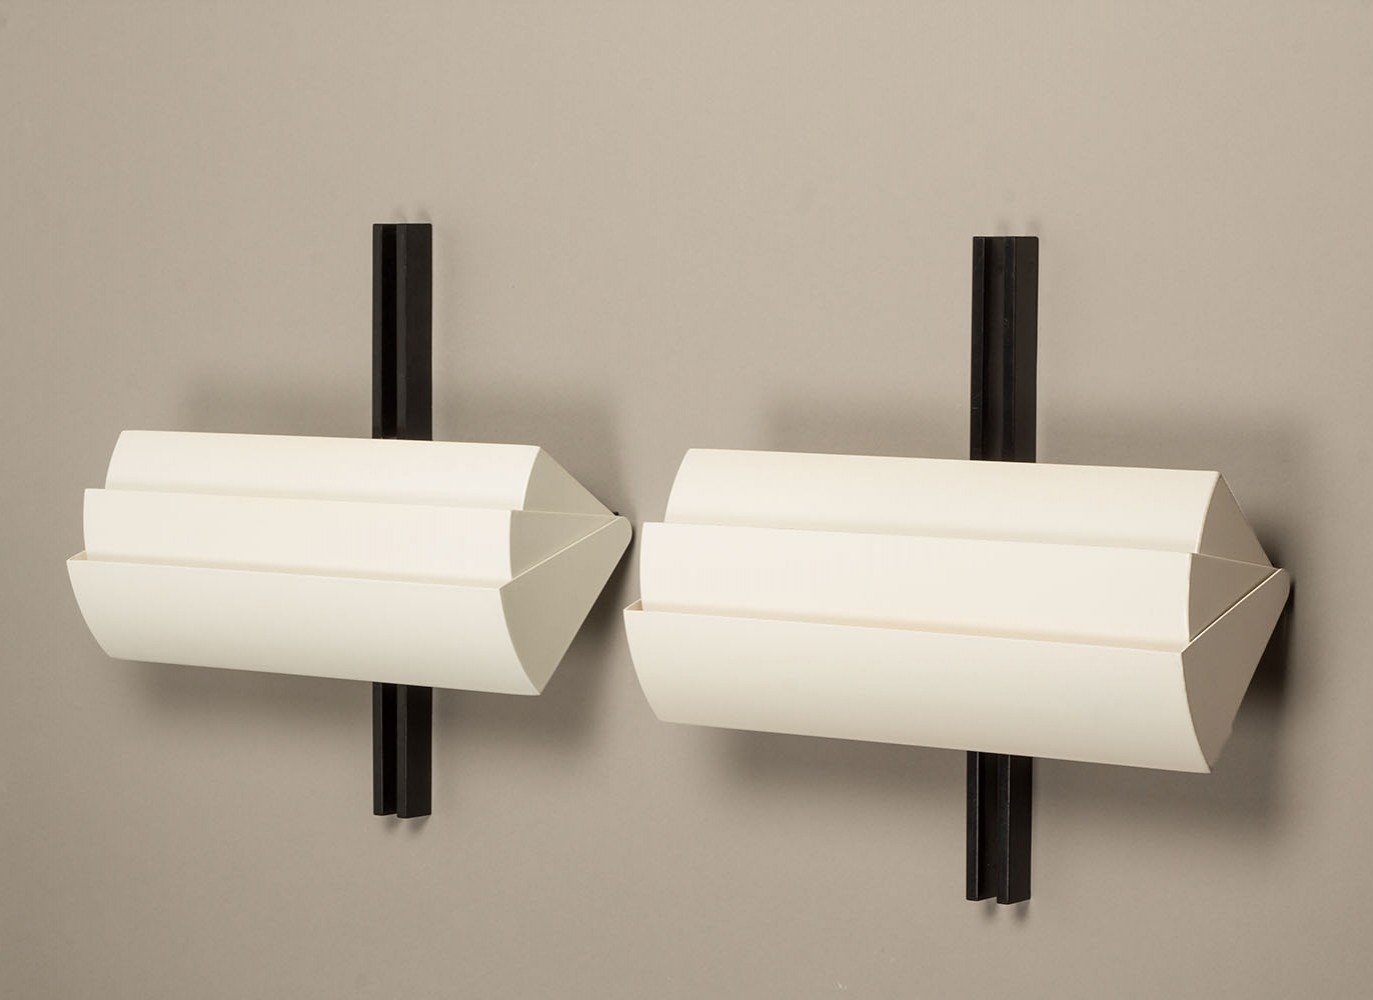 Pair of Stria wall lamps by Ernesto Gismondi for Artemide, 1980s